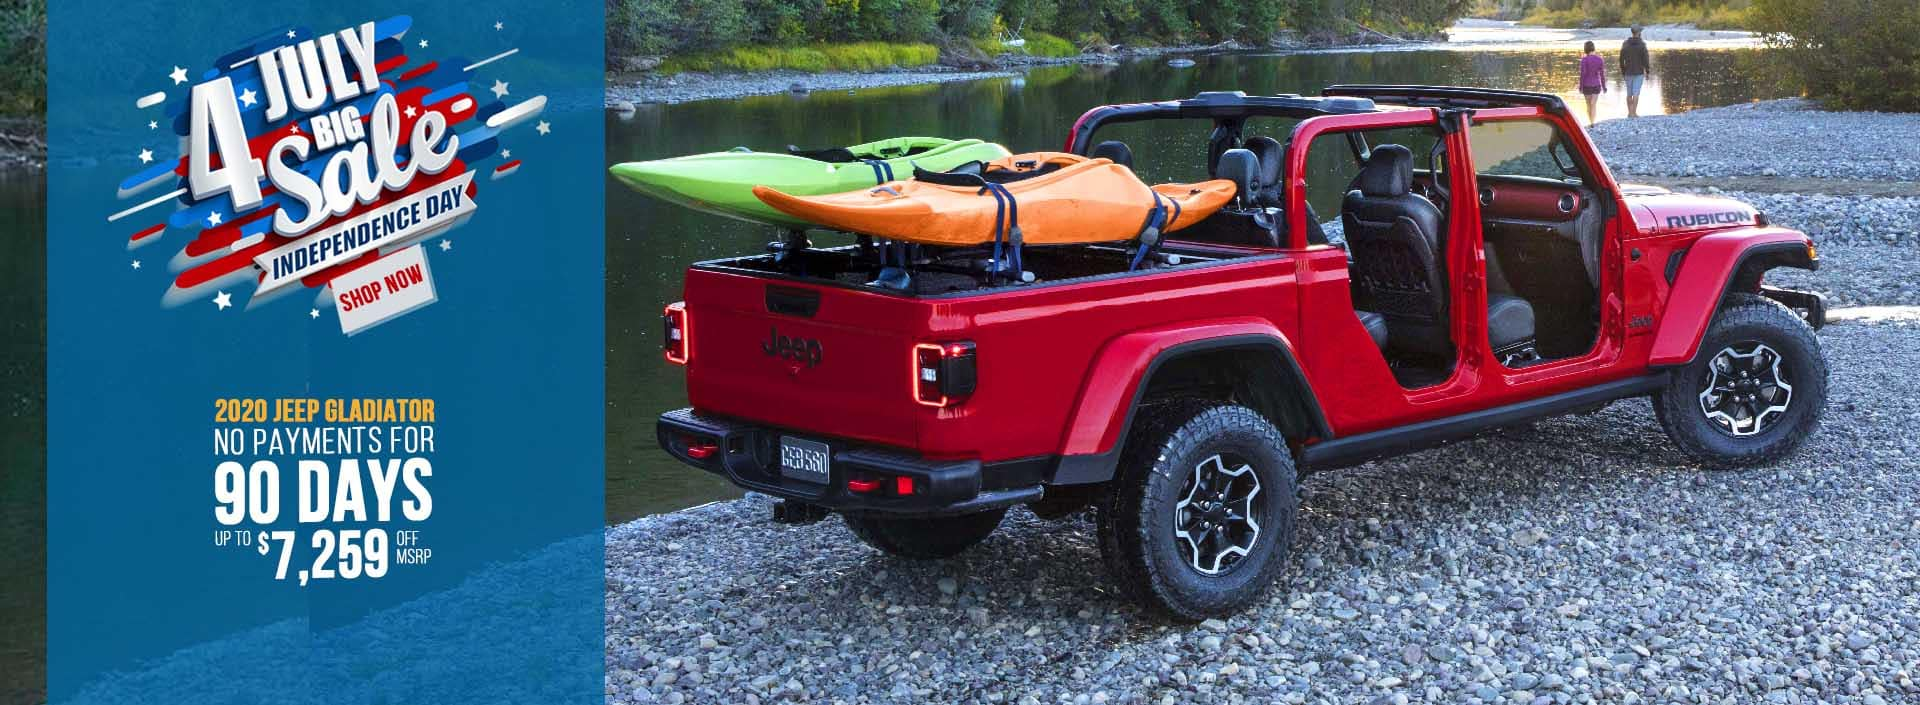 Jeep Gladiator 4th of july sale